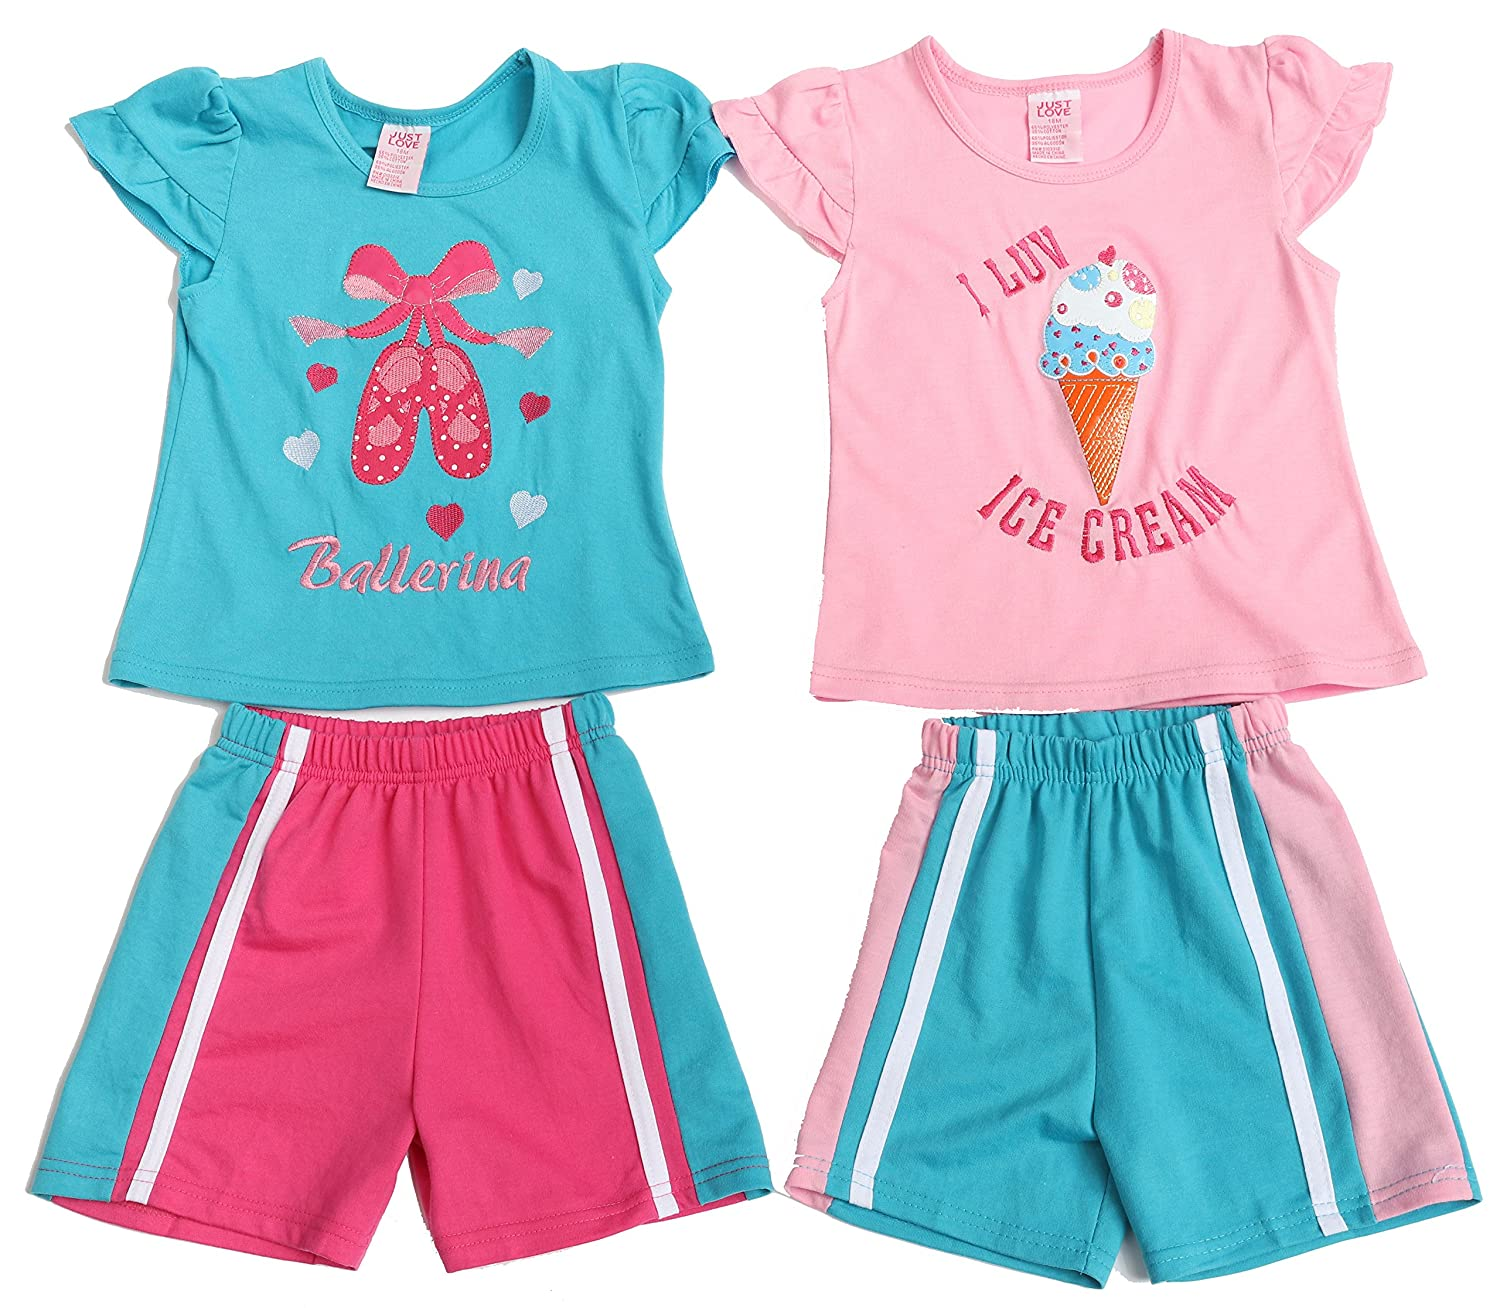 Pack of 2 Just Love Two Piece Short Set